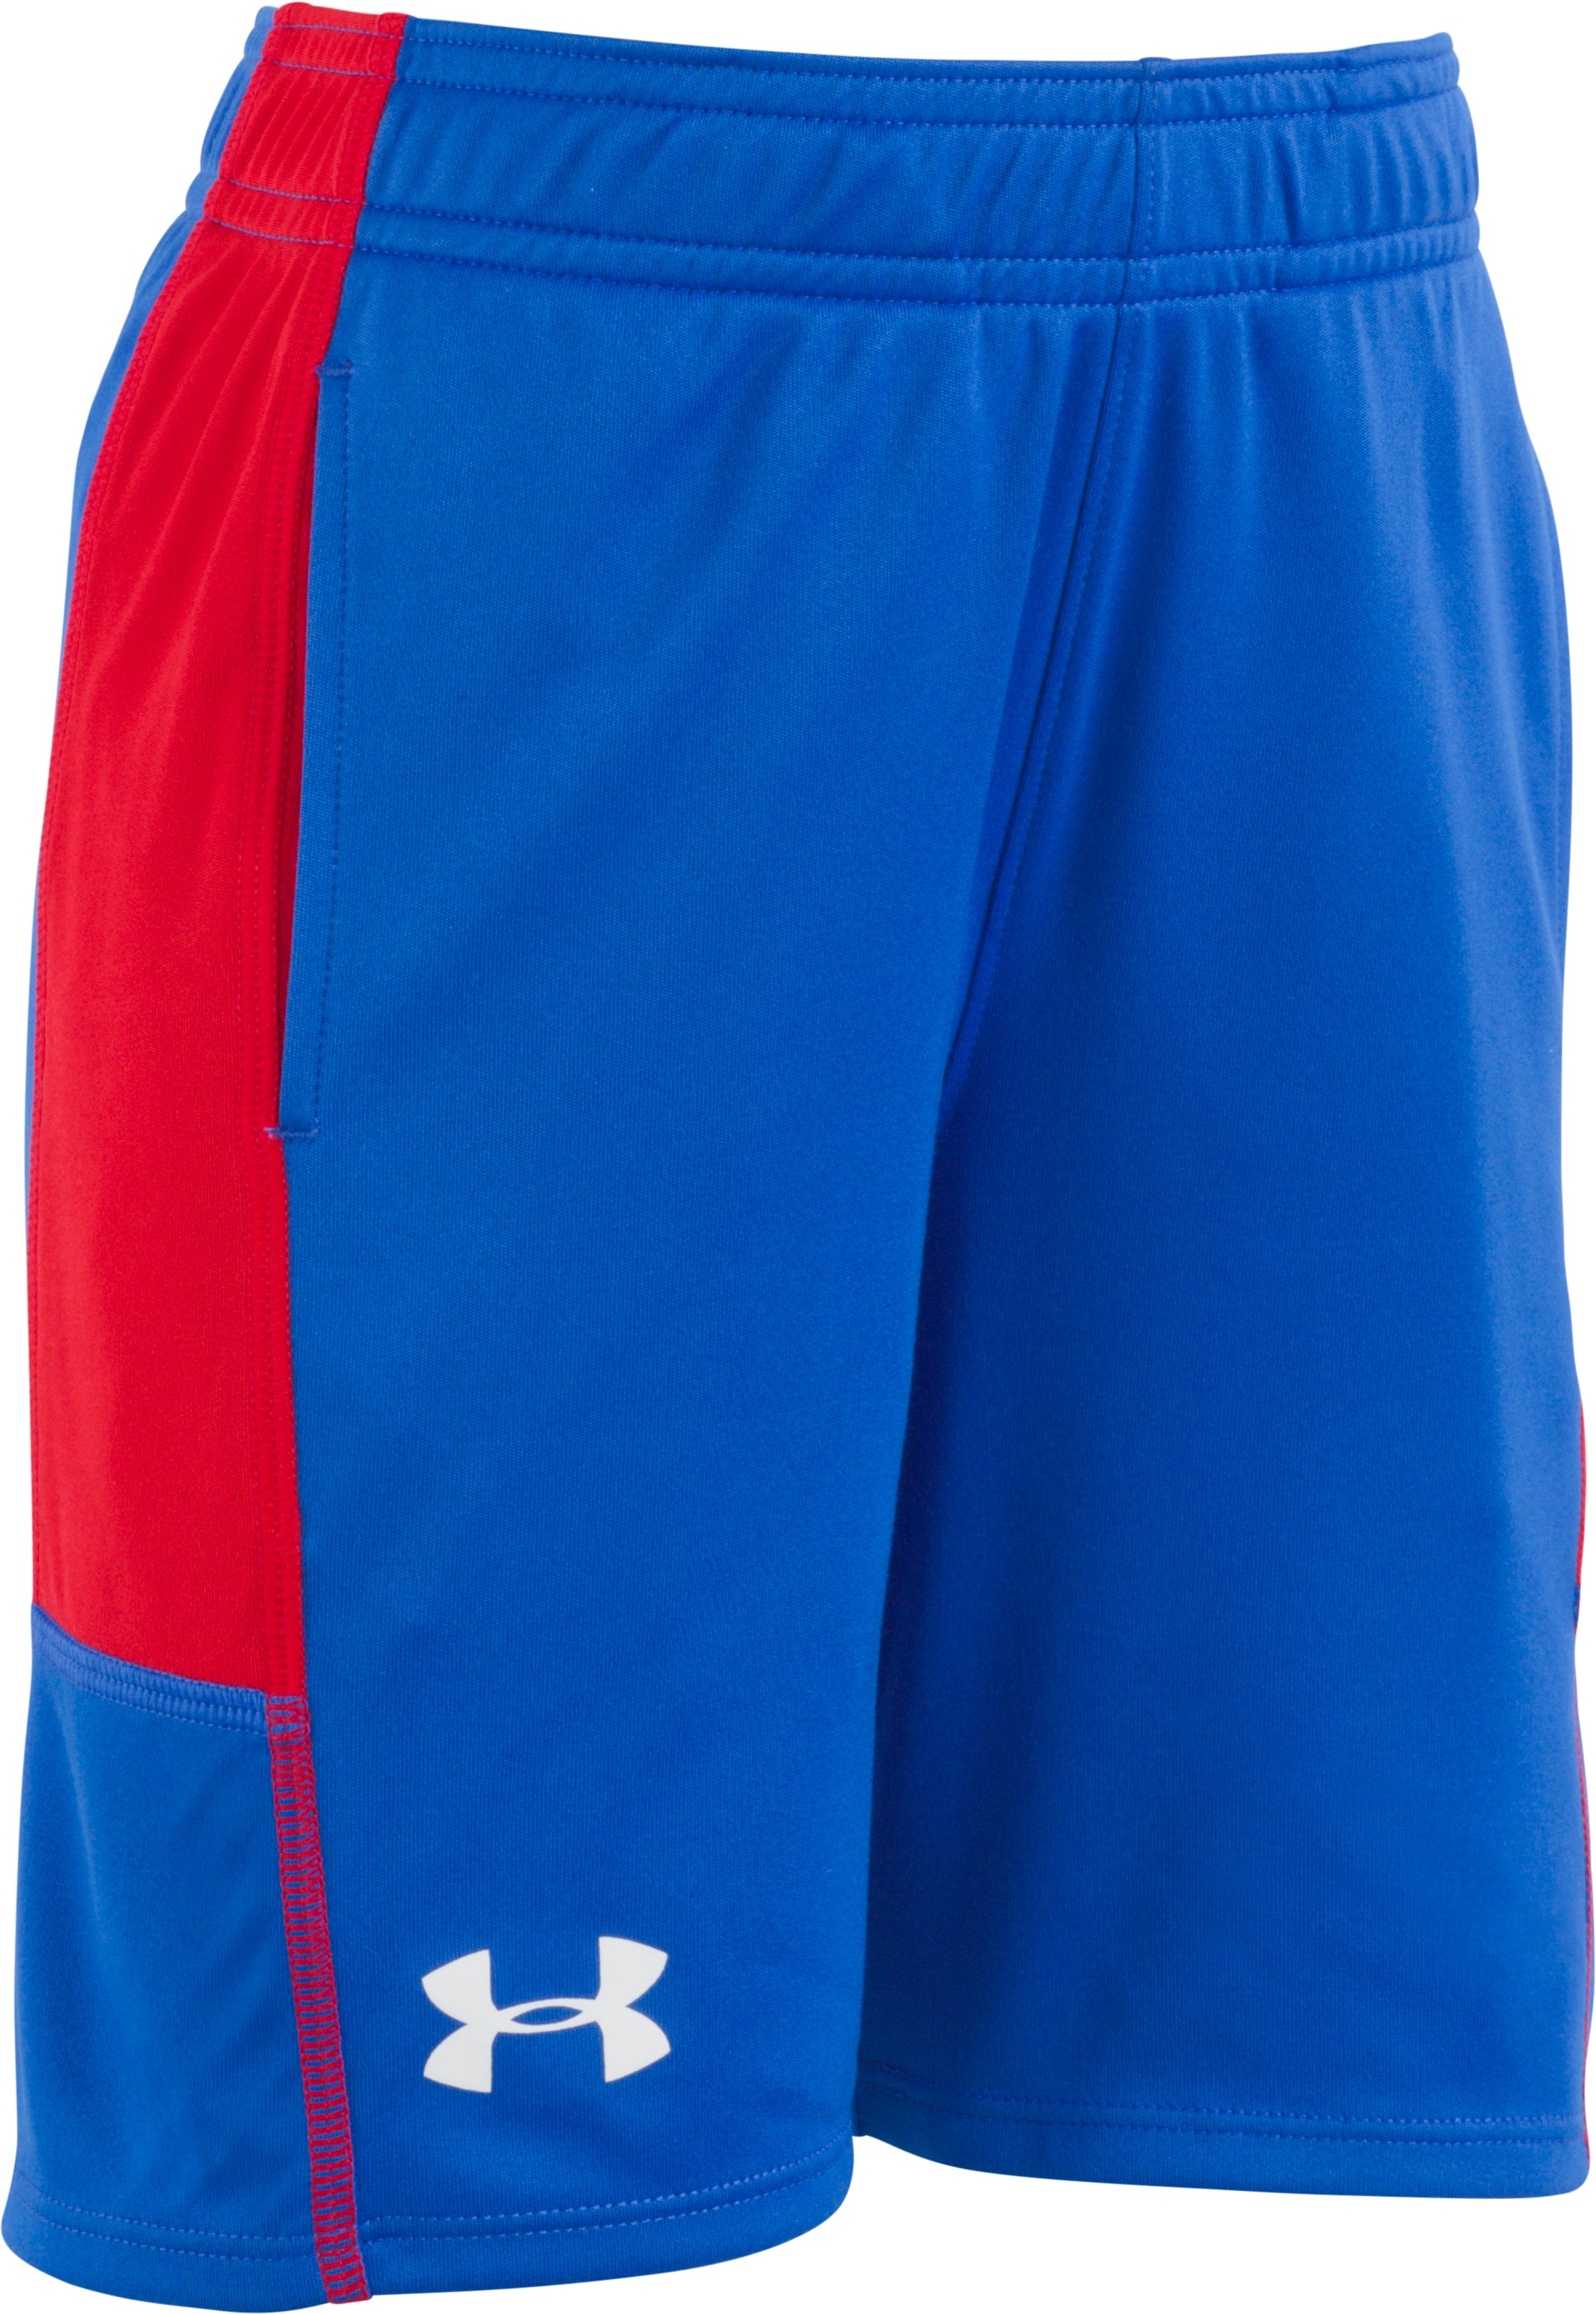 Boys' Pre-School UA Stunt Shorts, ULTRA BLUE, Laydown